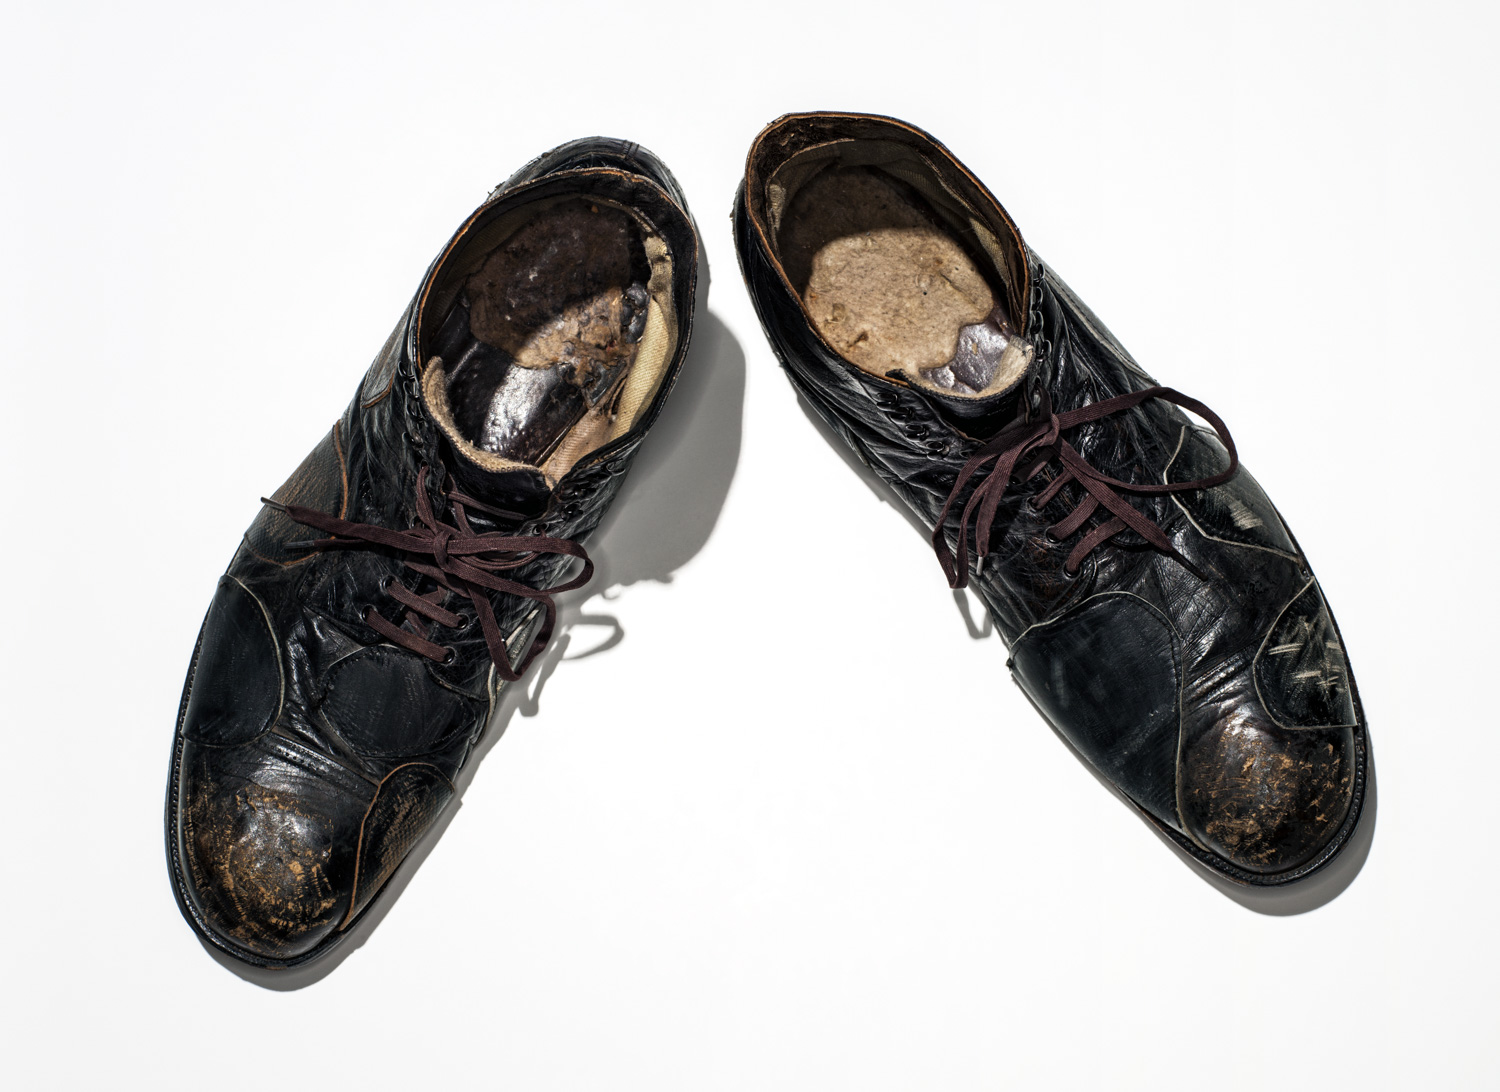 Charlie Chaplin's shoes, worn in City Lights, 1931.